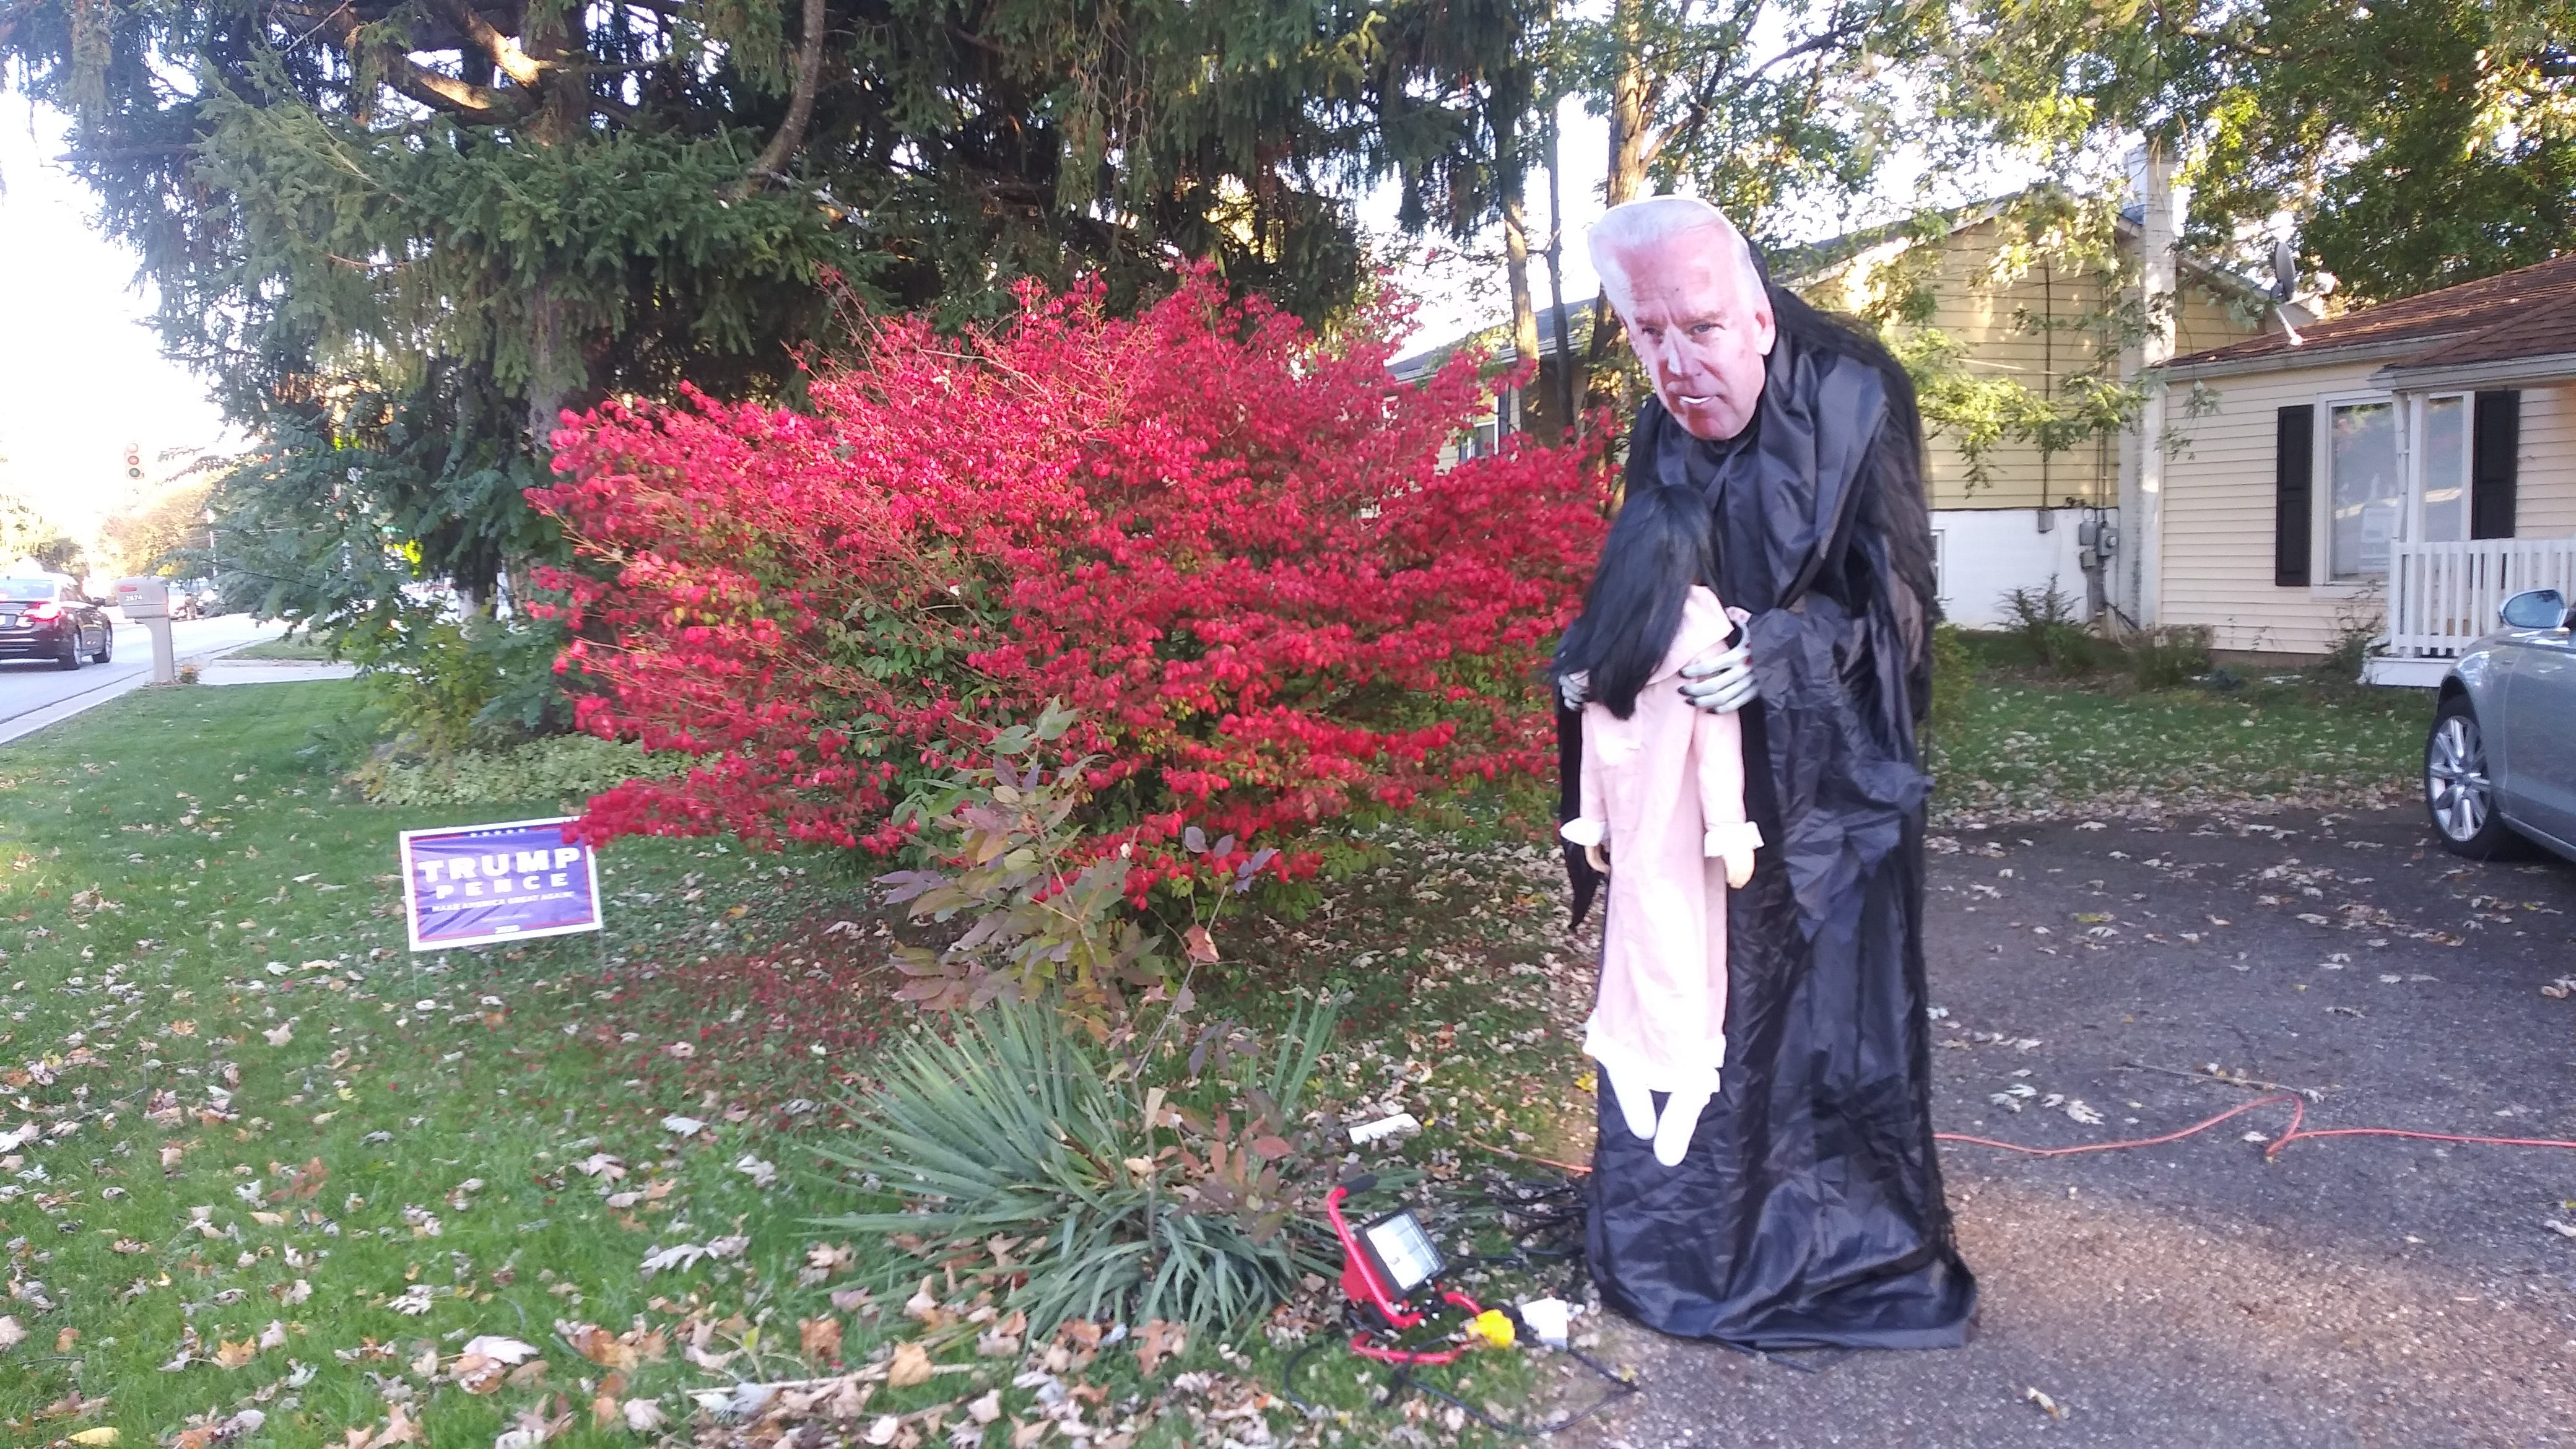 Critic Of Biden Display Sees Sexual Connotation In Halloween Figure